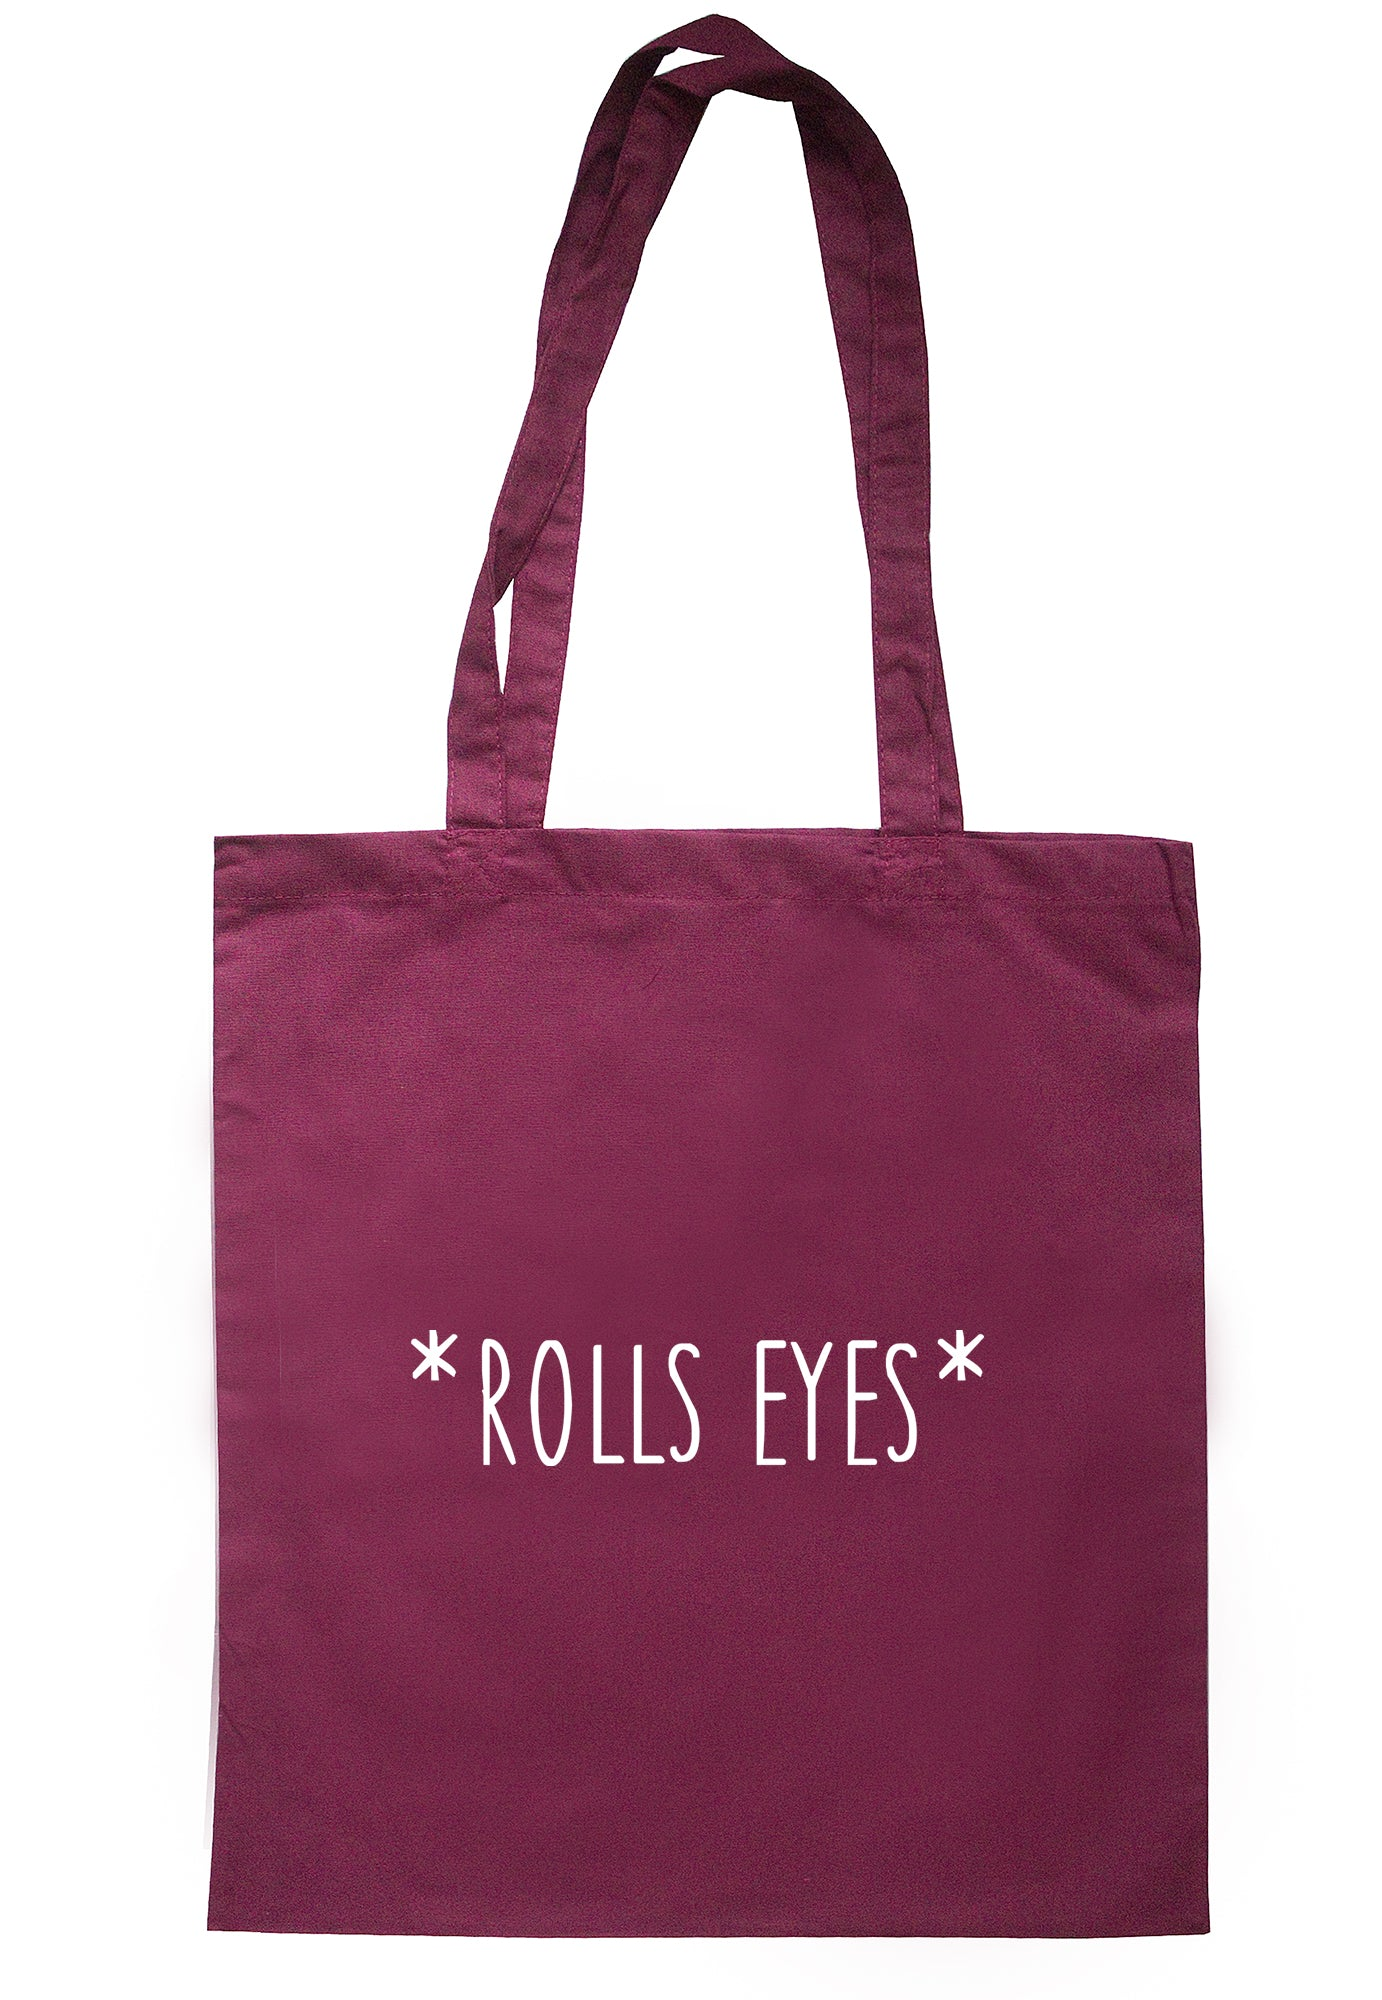 *Rolls Eyes* Tote Bag S1205 - Illustrated Identity Ltd.